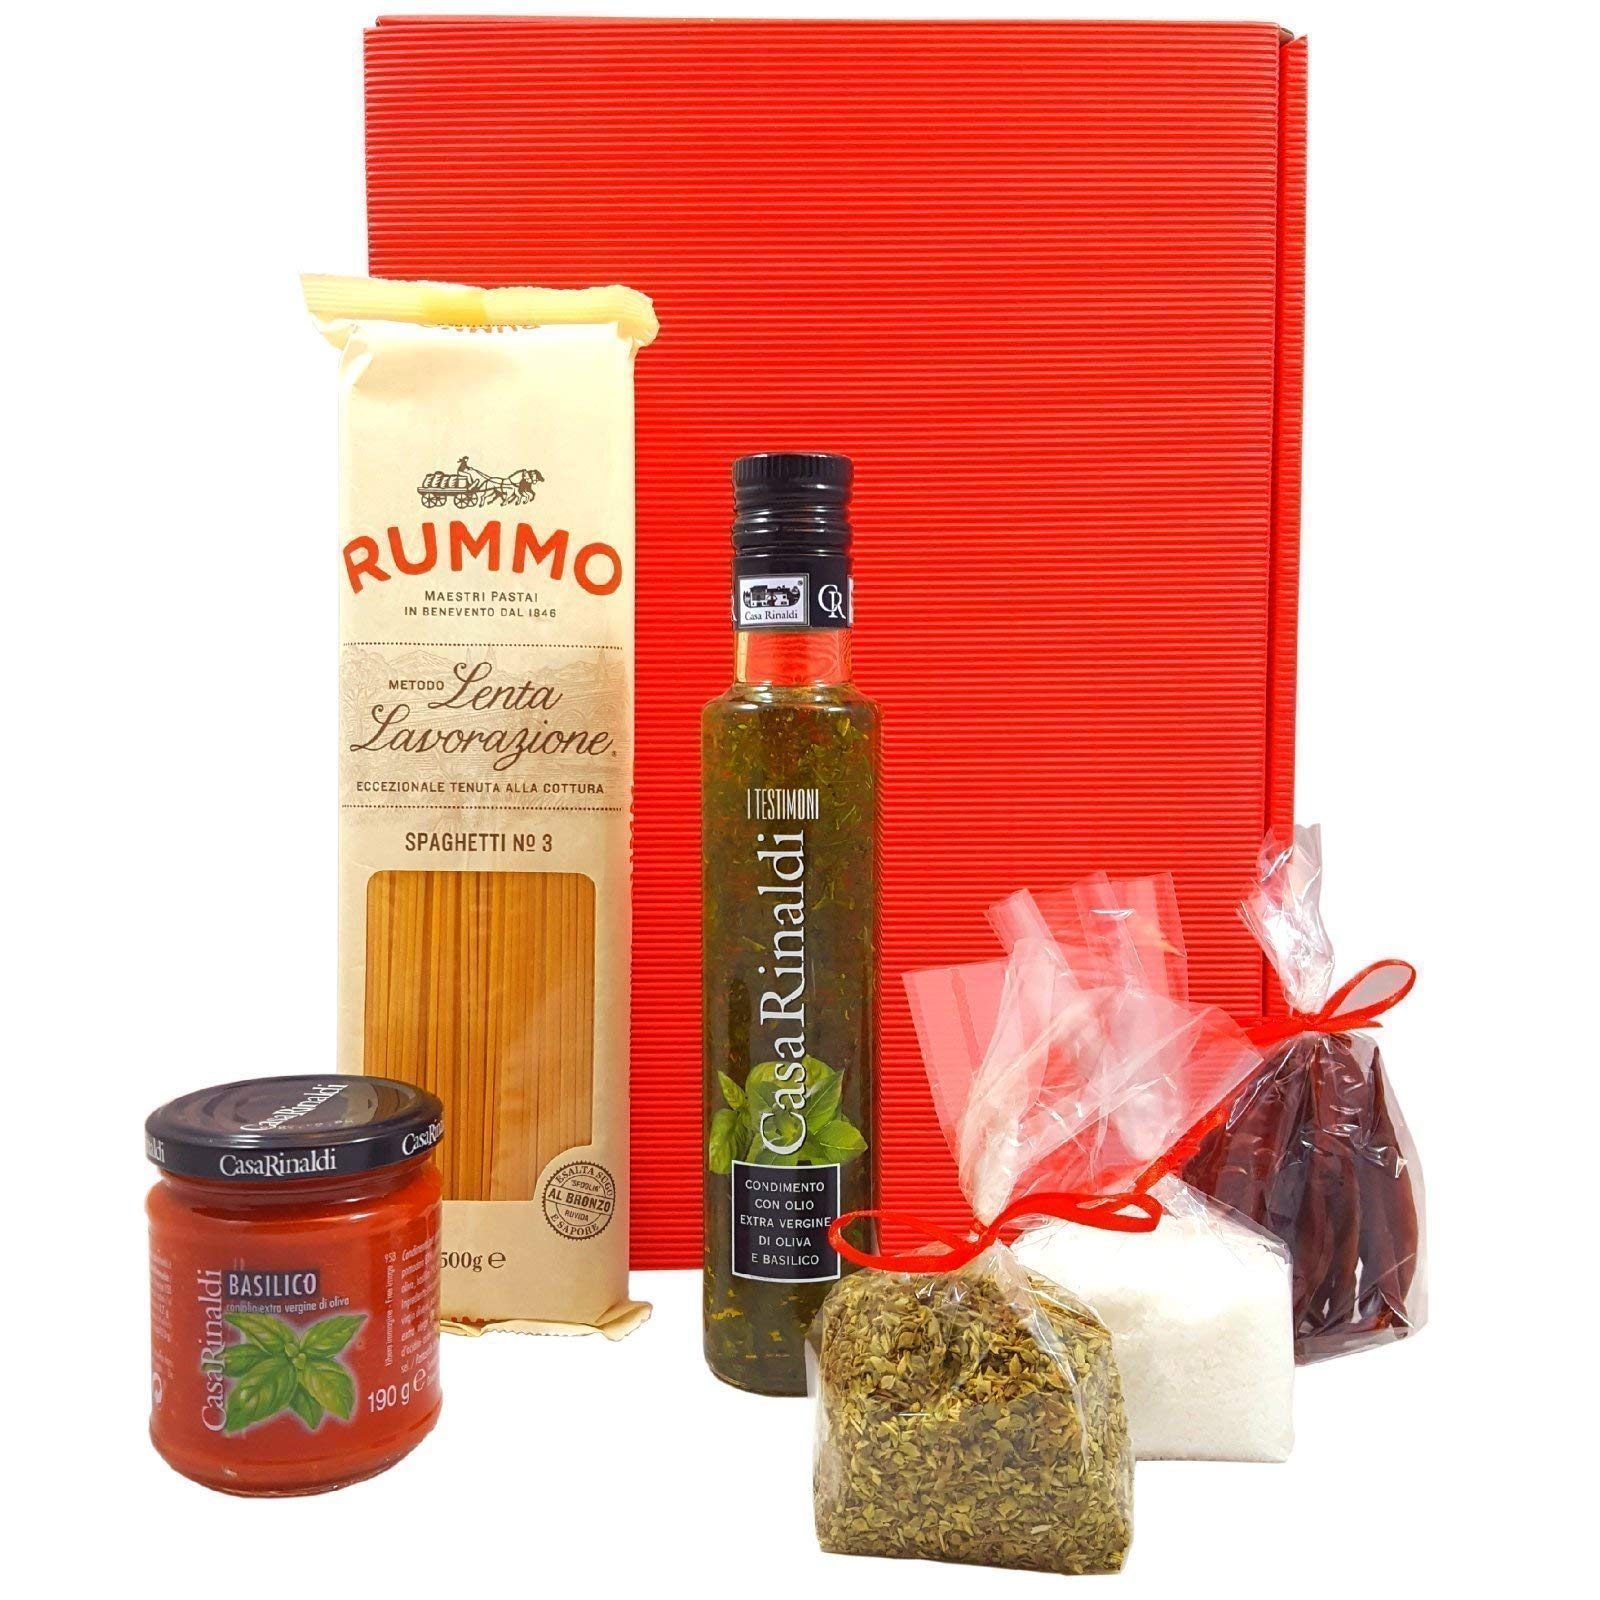 Gift Set Naples Italy Gift Basket Filled With Pasta Delicacies Italian Specialties Delicacies Cheap Shopping Deli Berlin Cooking Ideas Recipes